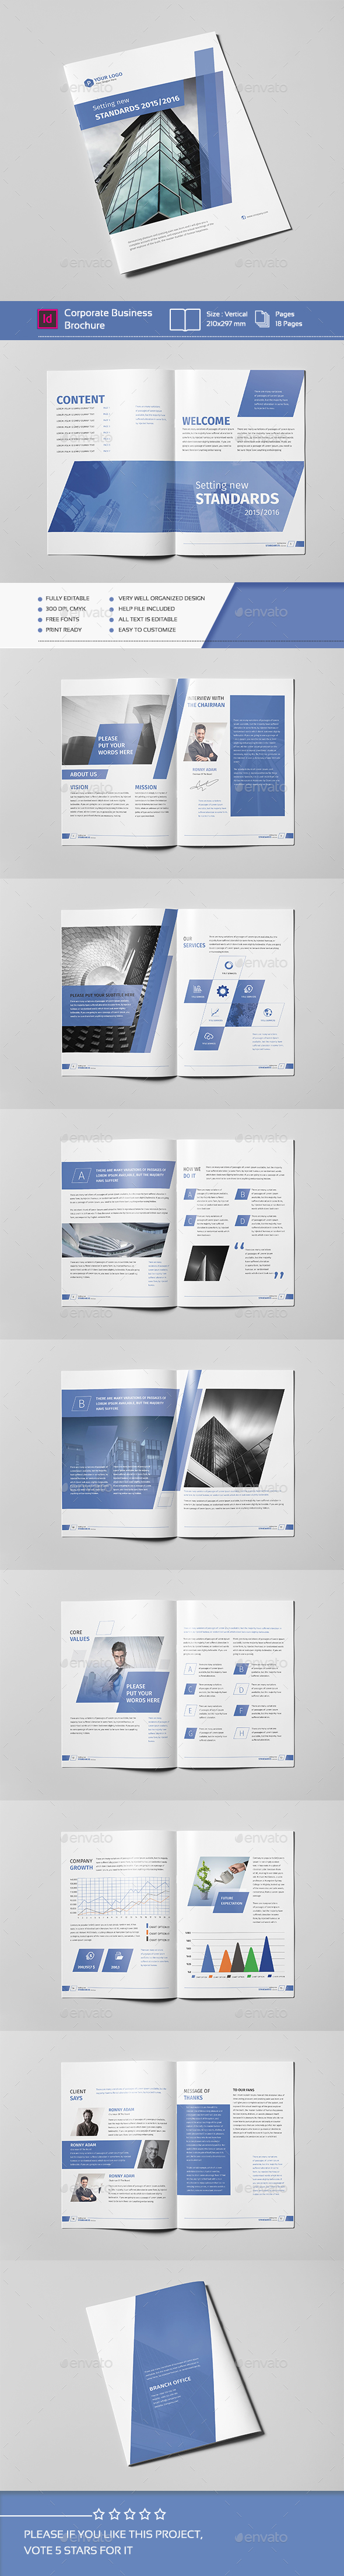 Corporate Business Brochure 18 Pages A4 V.02 - Corporate Brochures